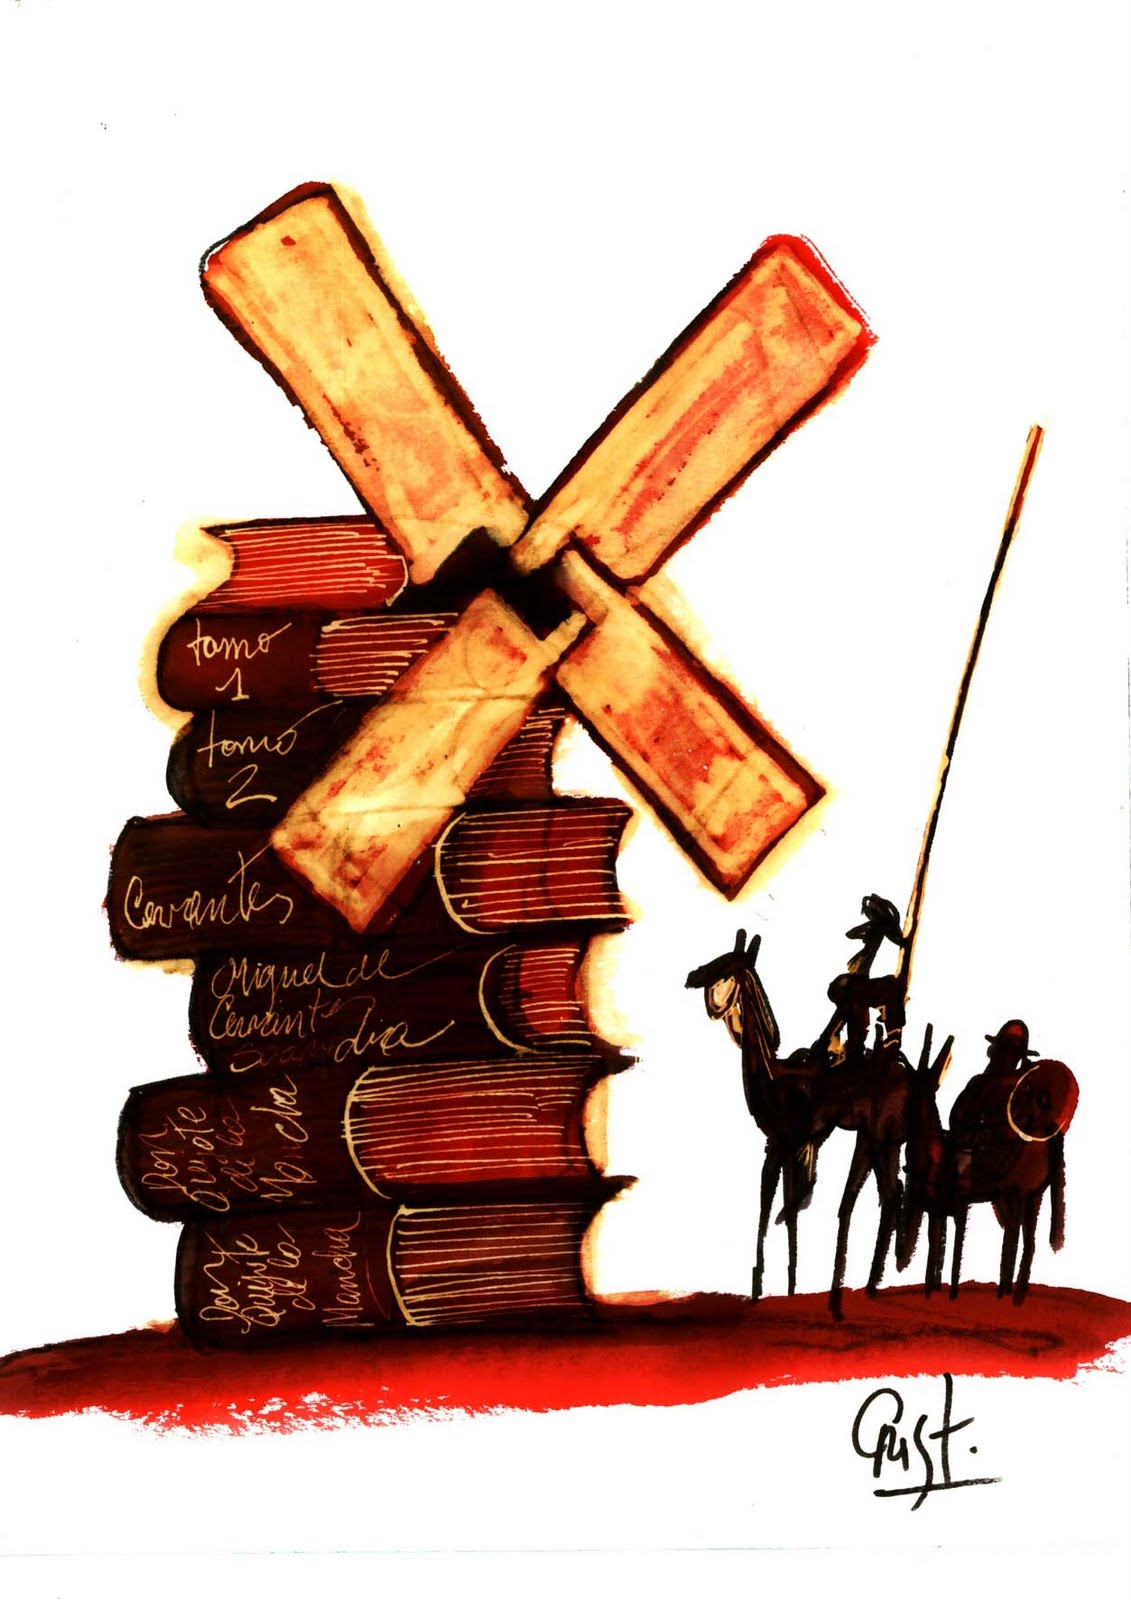 Resumen Del Libro Don Quijote Dela Mancha Don Quijote De La Mancha On Pinterest Don Quixote